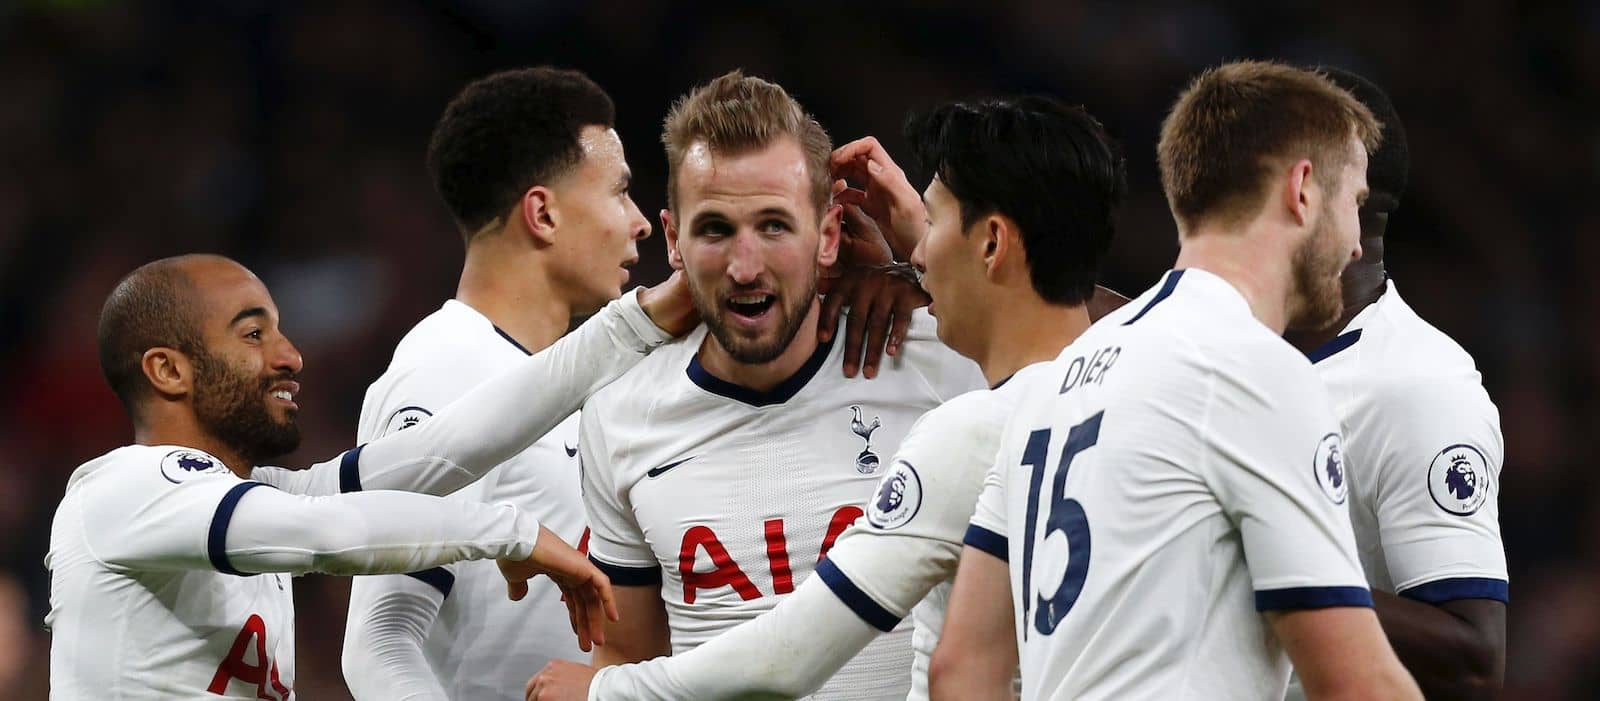 Real Madrid financially unable to sign Tottenham's Harry Kane